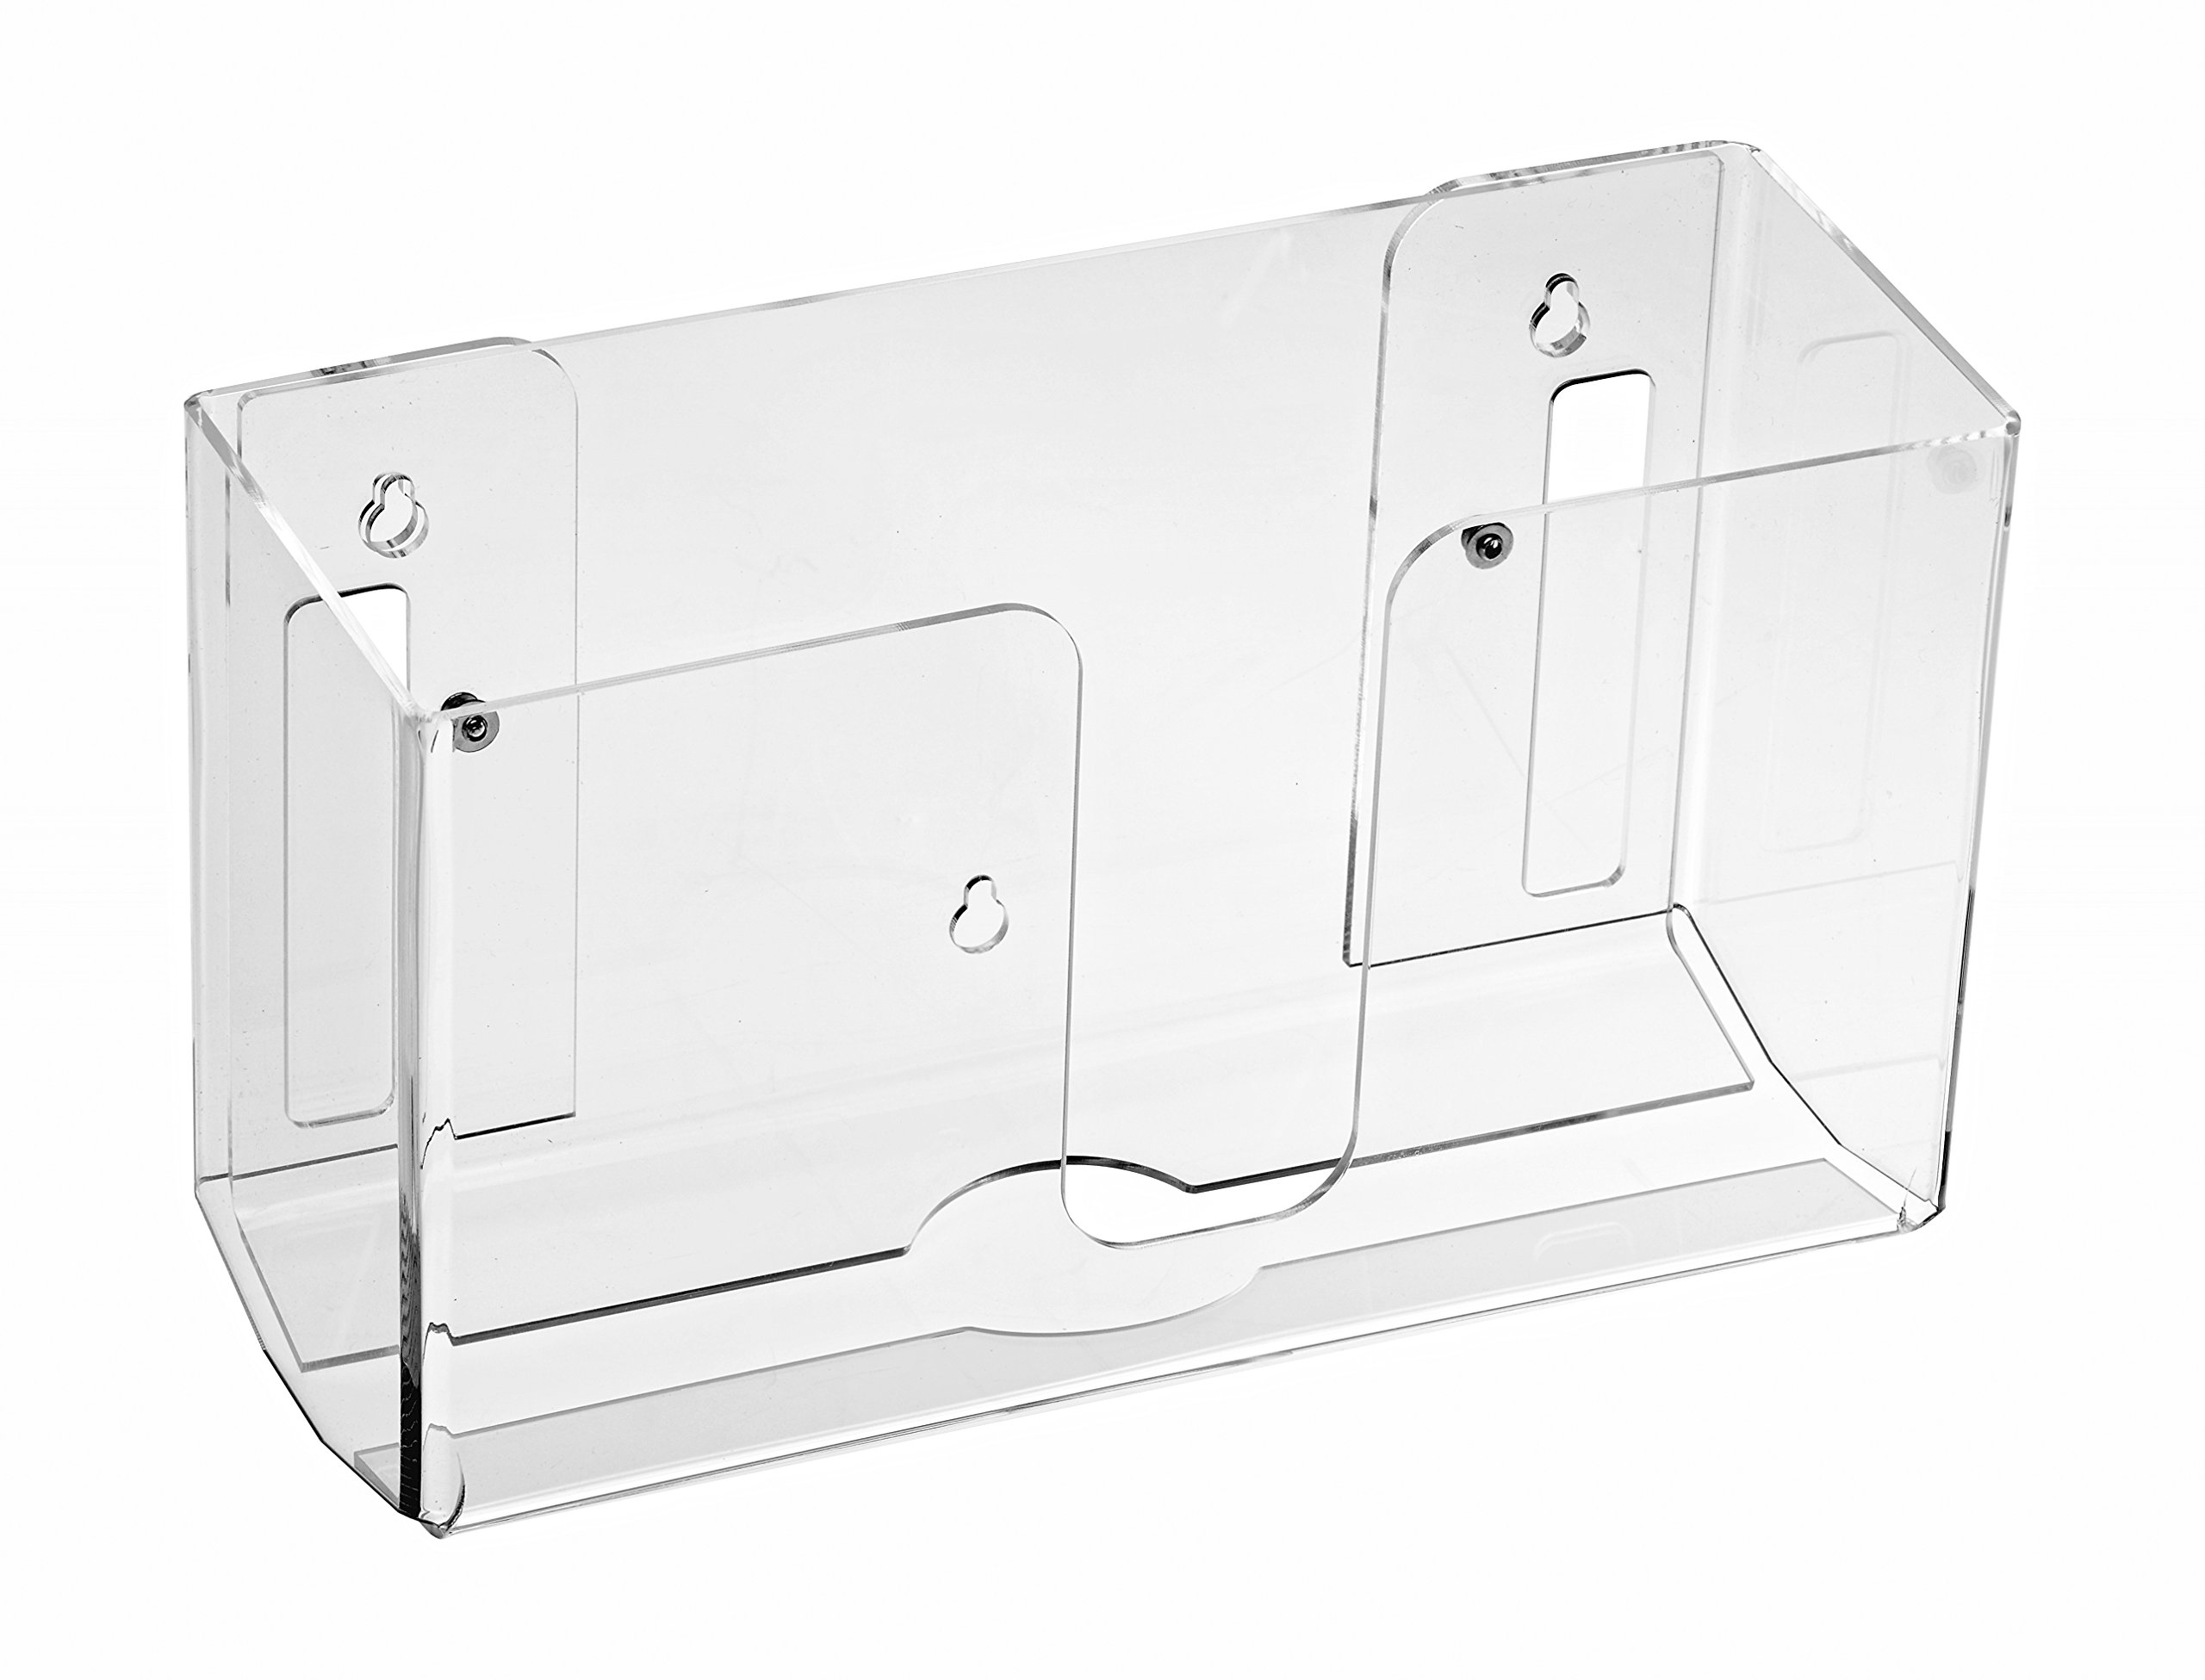 Alpine Industries Acrylic Wall-Mounted Paper Towel Dispenser - Single Or Multiple Towel Retrieval - Bi Fold and C Fold (Clear)